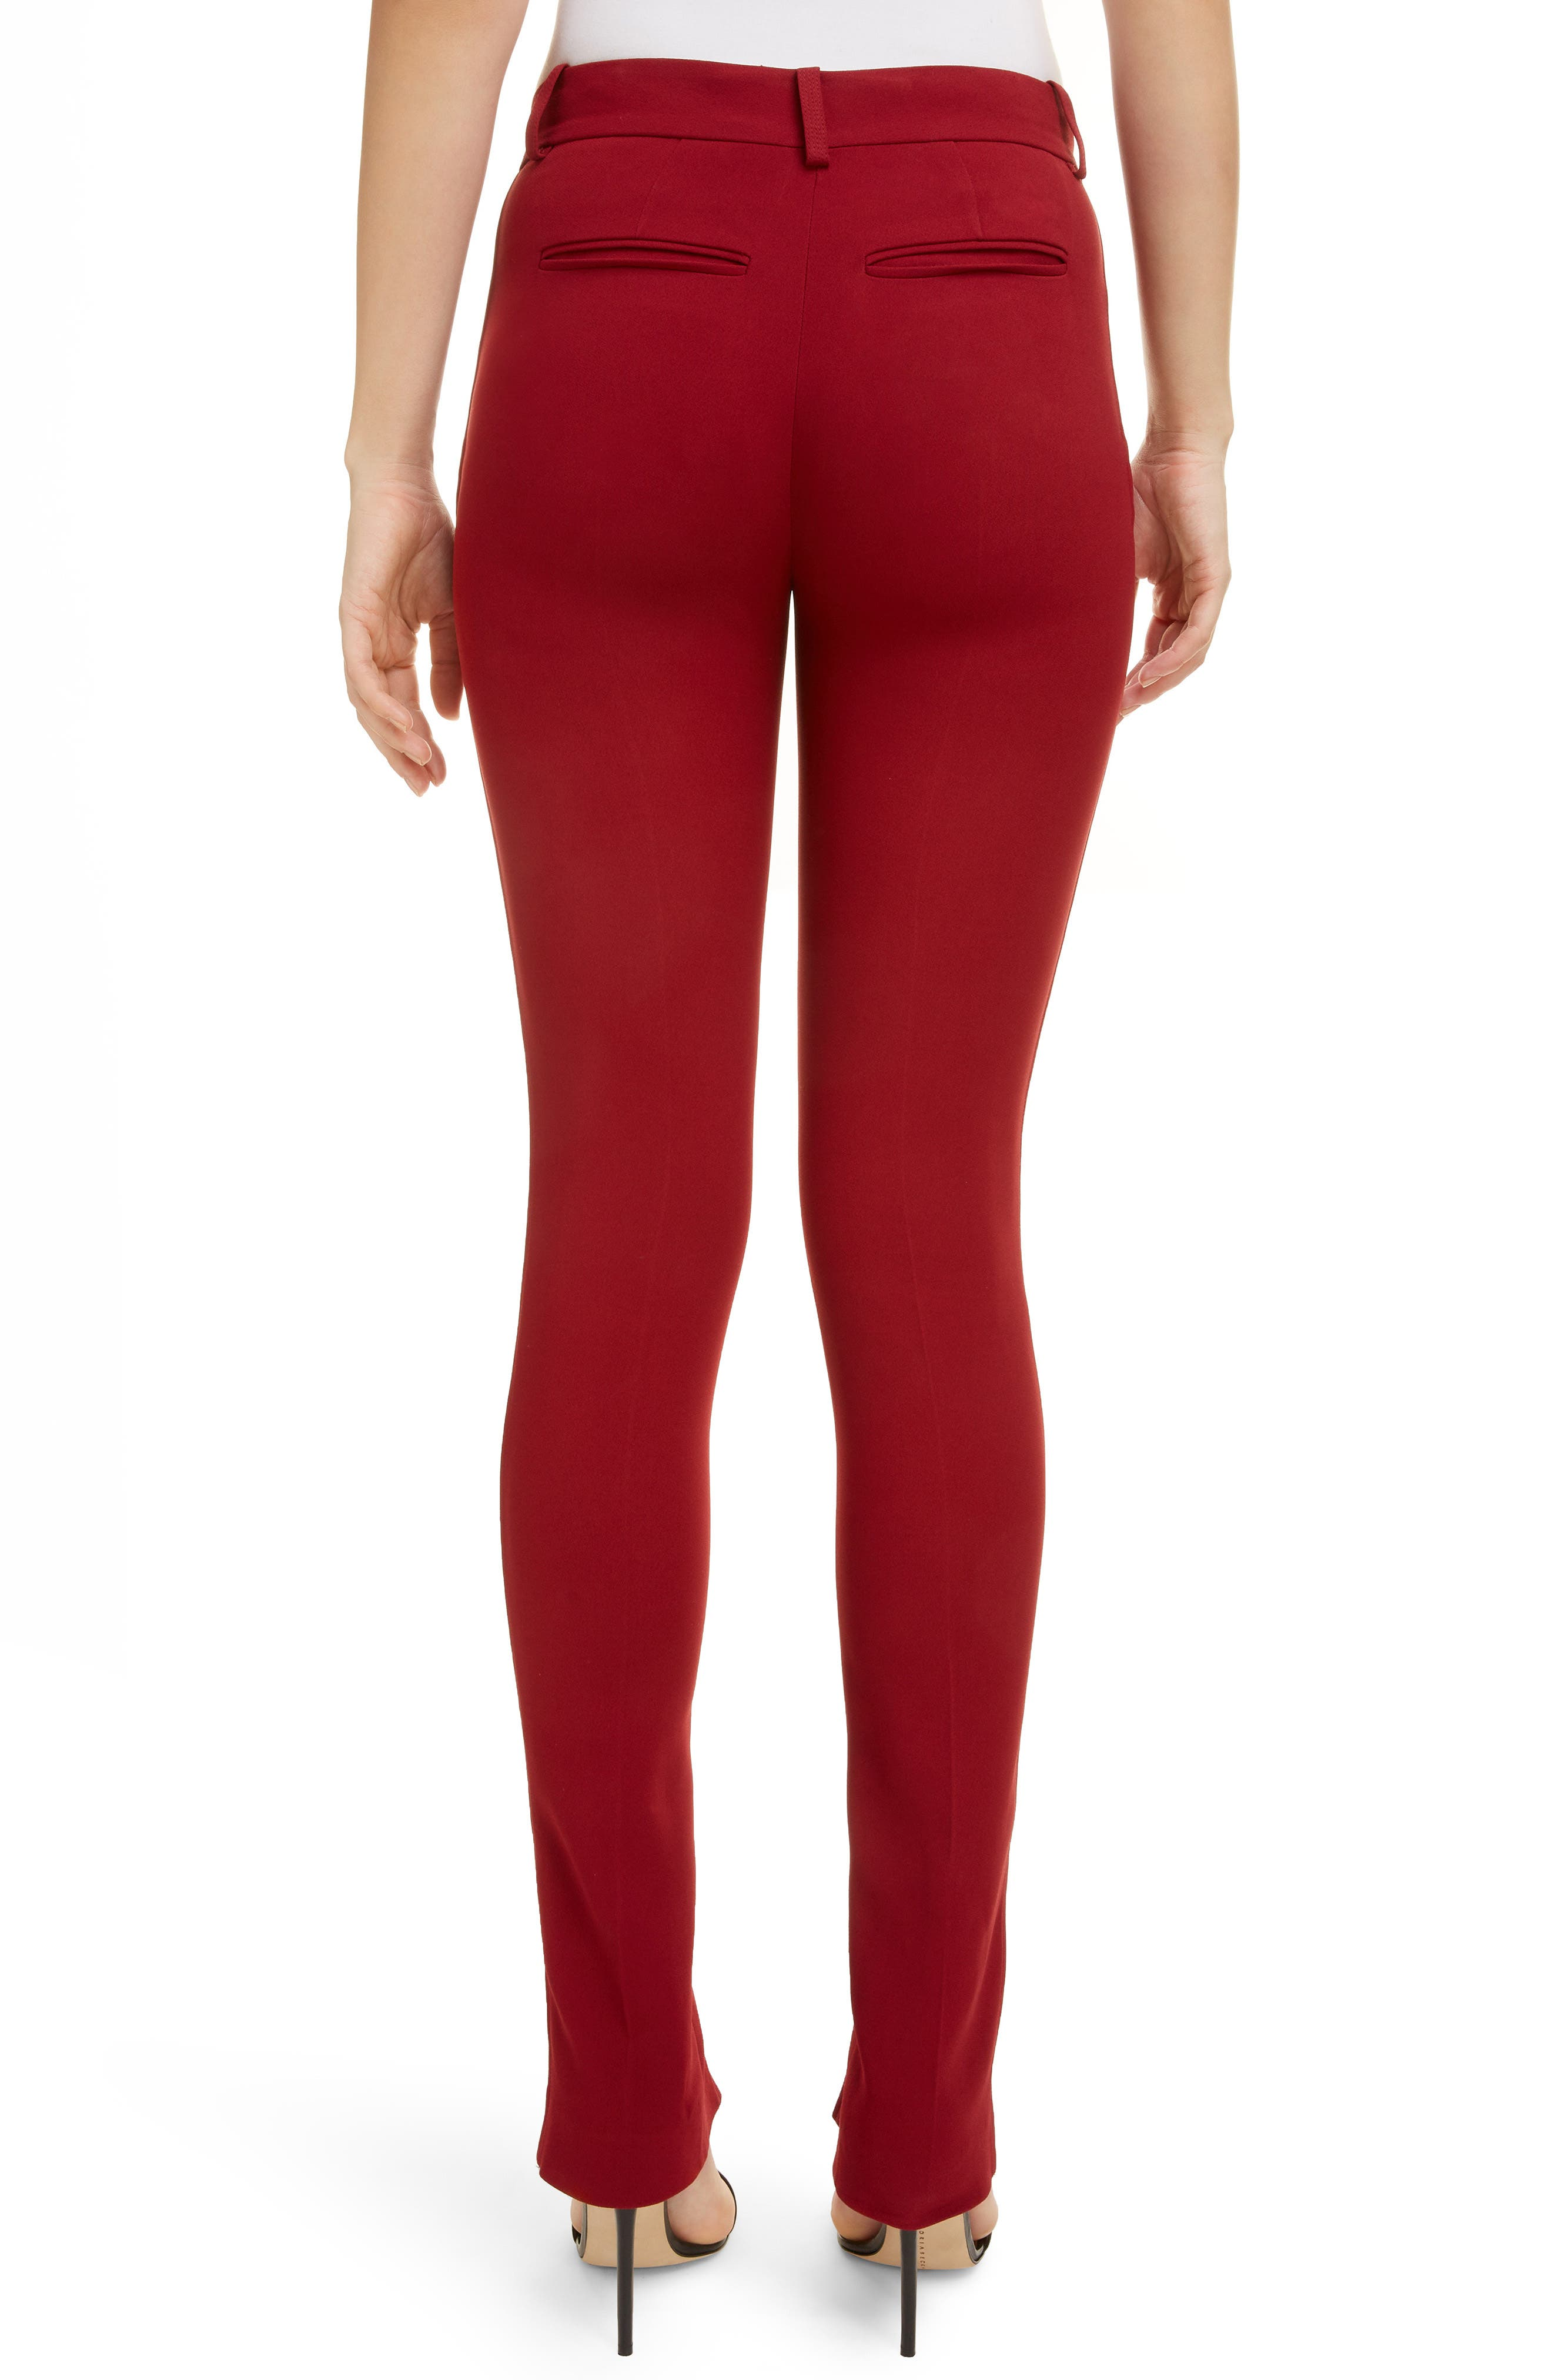 VICTORIA BECKHAM, Front Split Skinny Pants, Alternate thumbnail 2, color, BURGUNDY